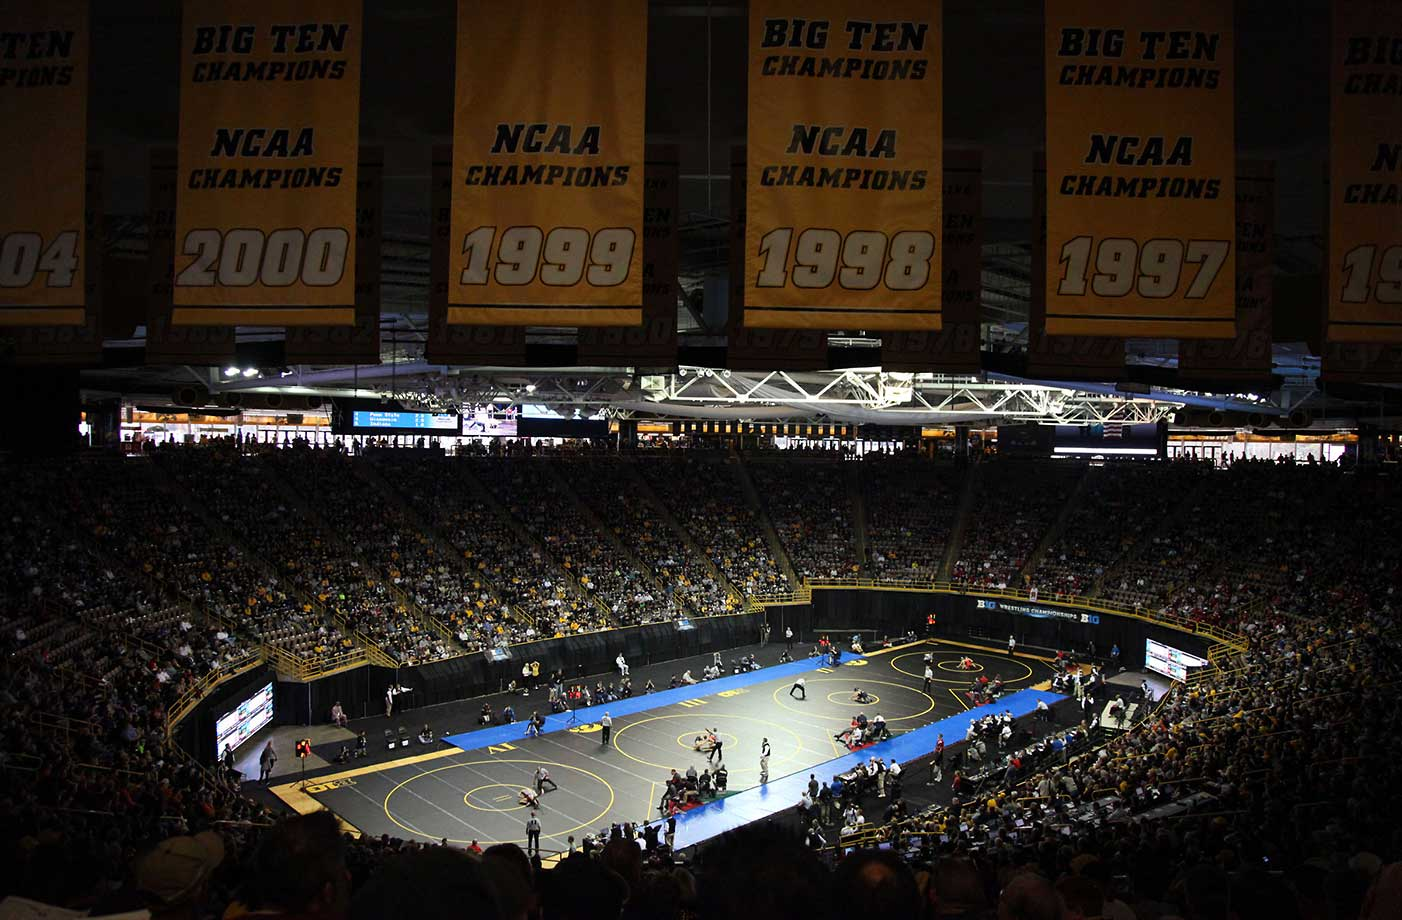 A scenic shot of the Big Ten Wrestling Championships at Carver-Hawkeye Arena in Iowa City, Iowa.